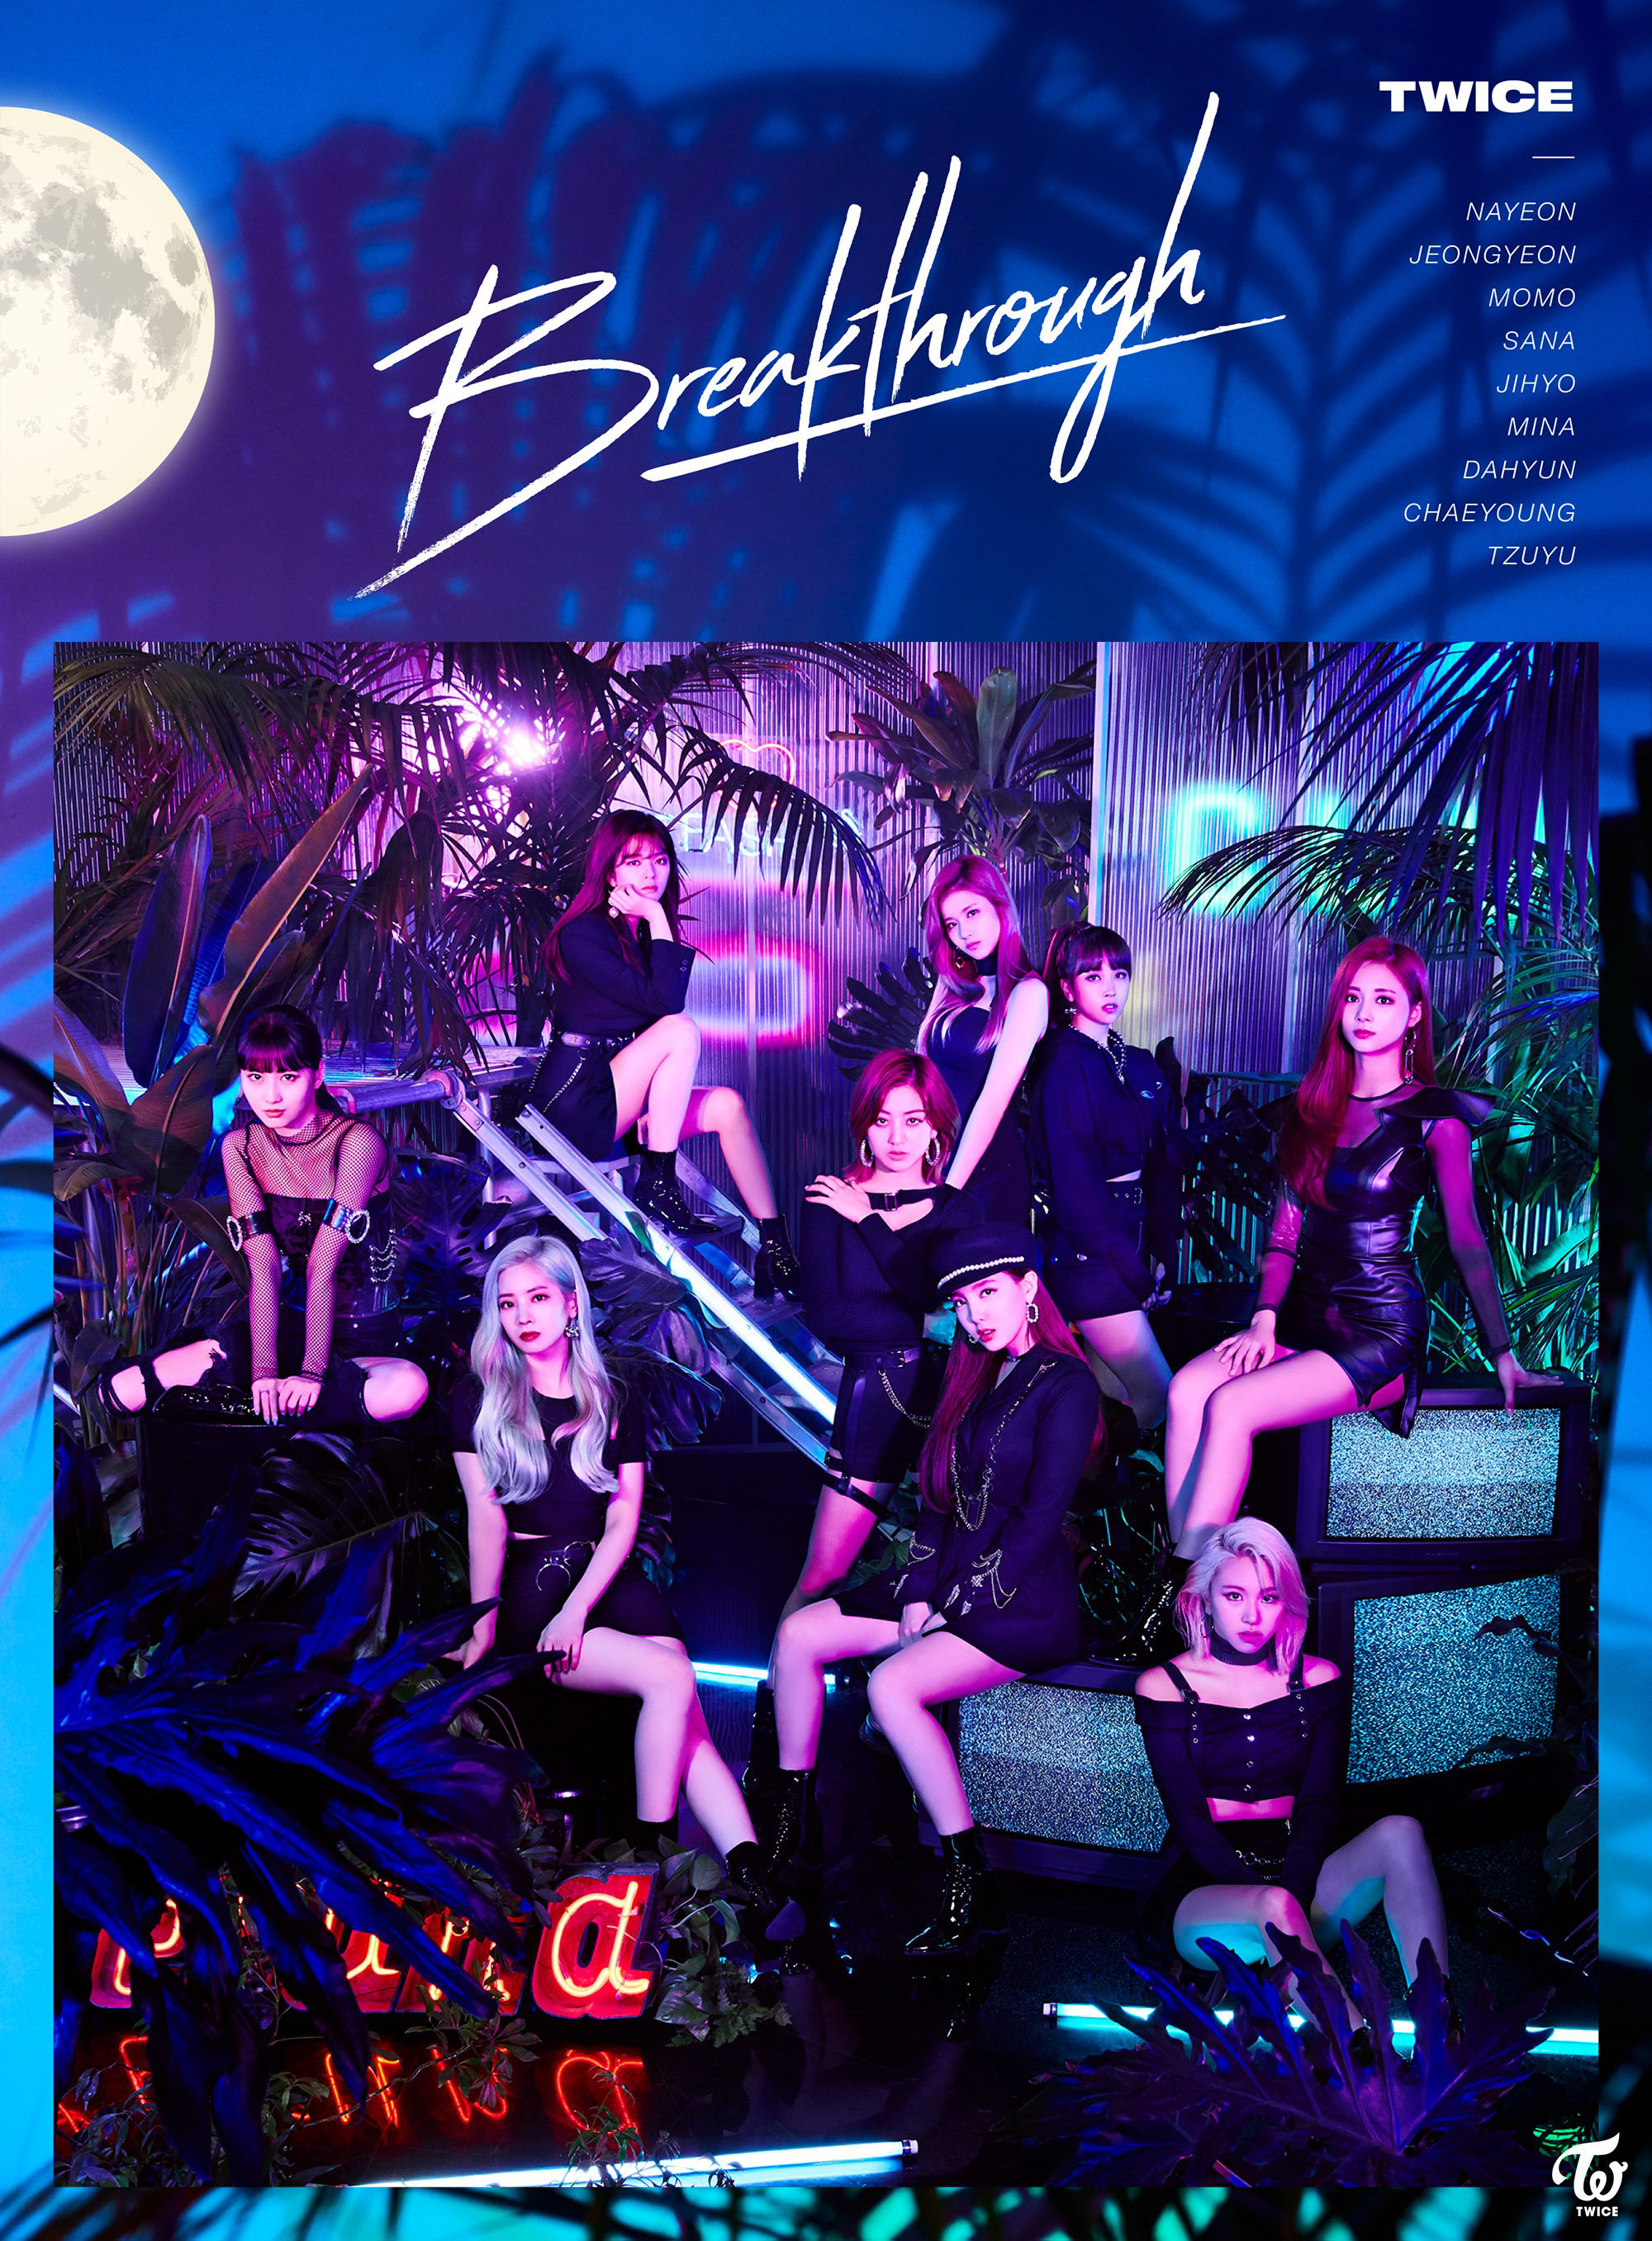 TWICE Breakthrough group poster 1.png